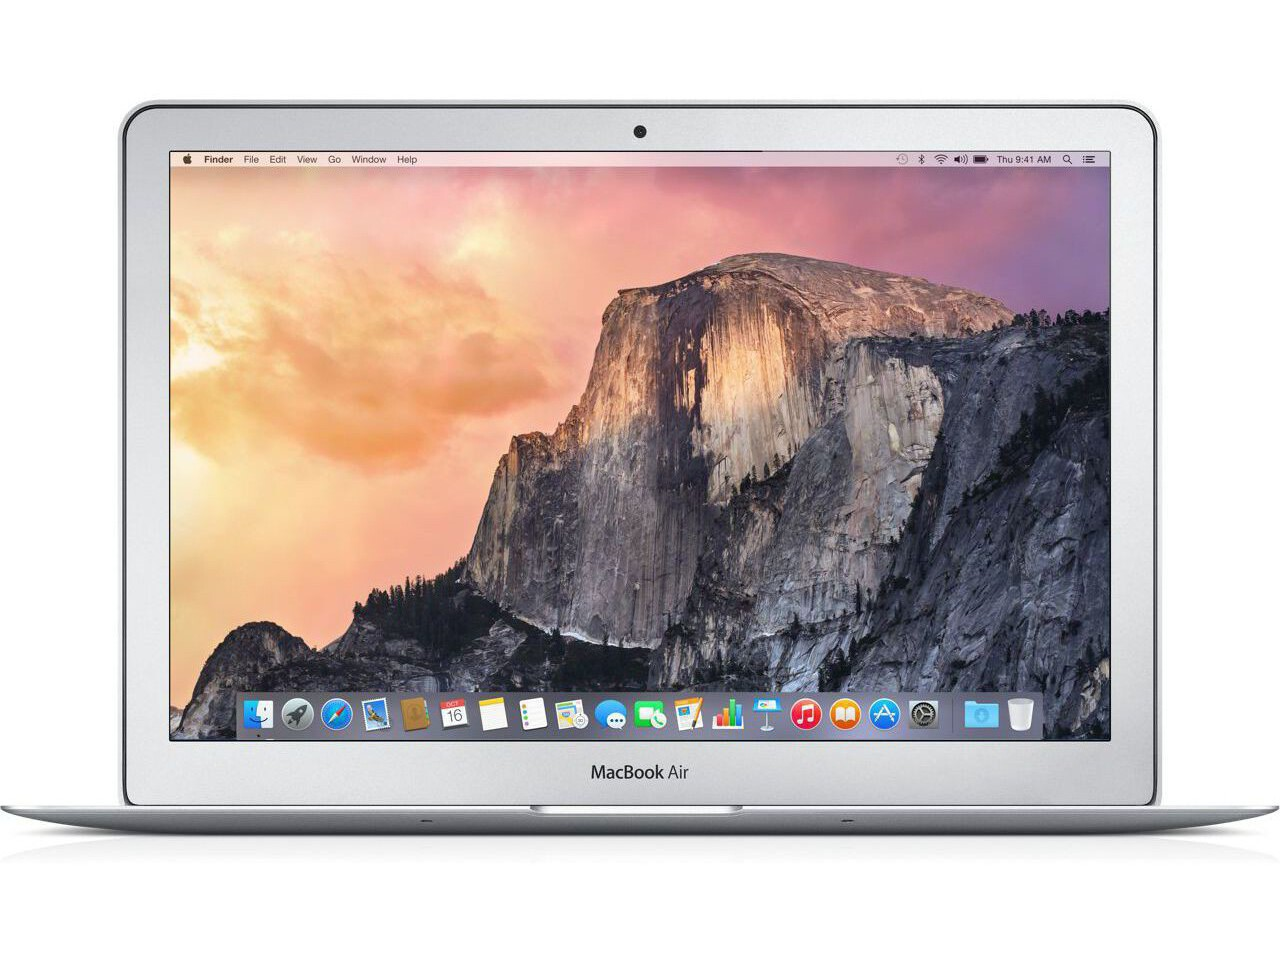 macbook air 13 inch 2014 silver